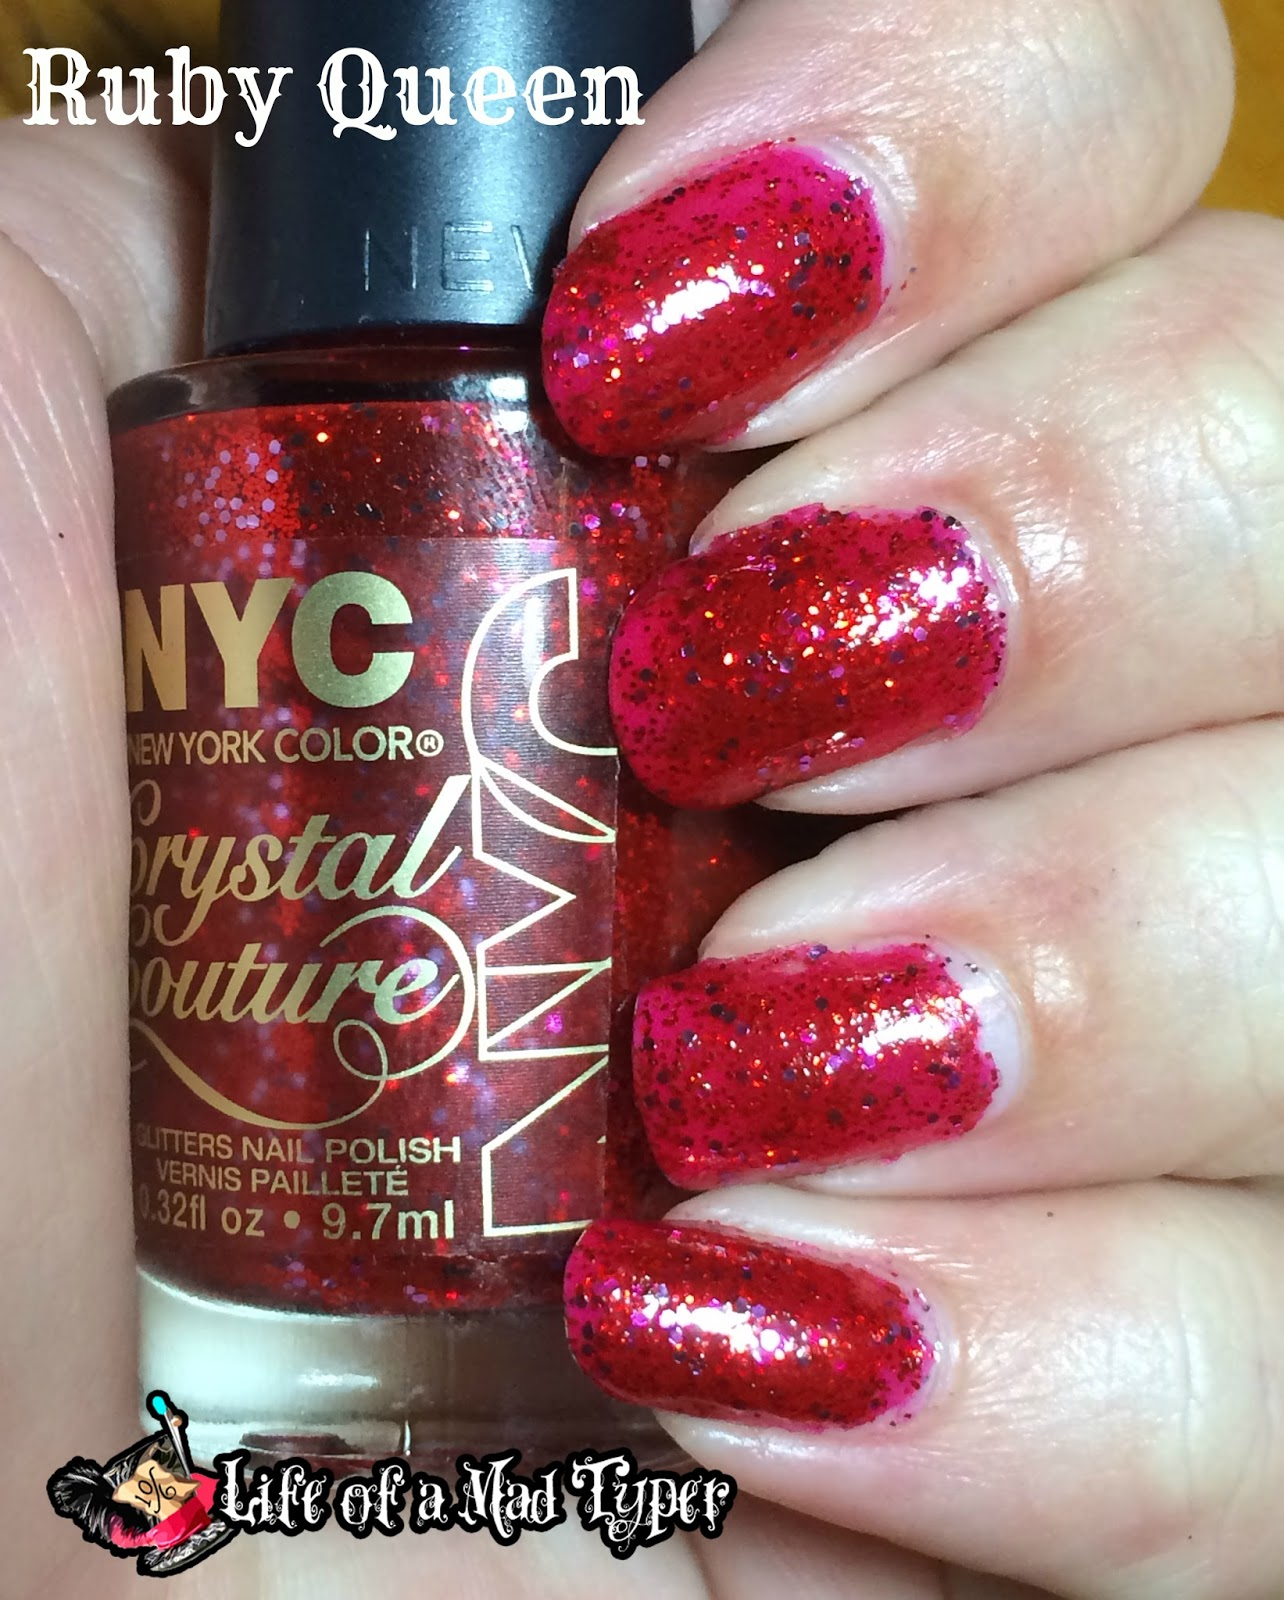 NYC Fashion Queen Crystal Couture Collection Ruby Queen